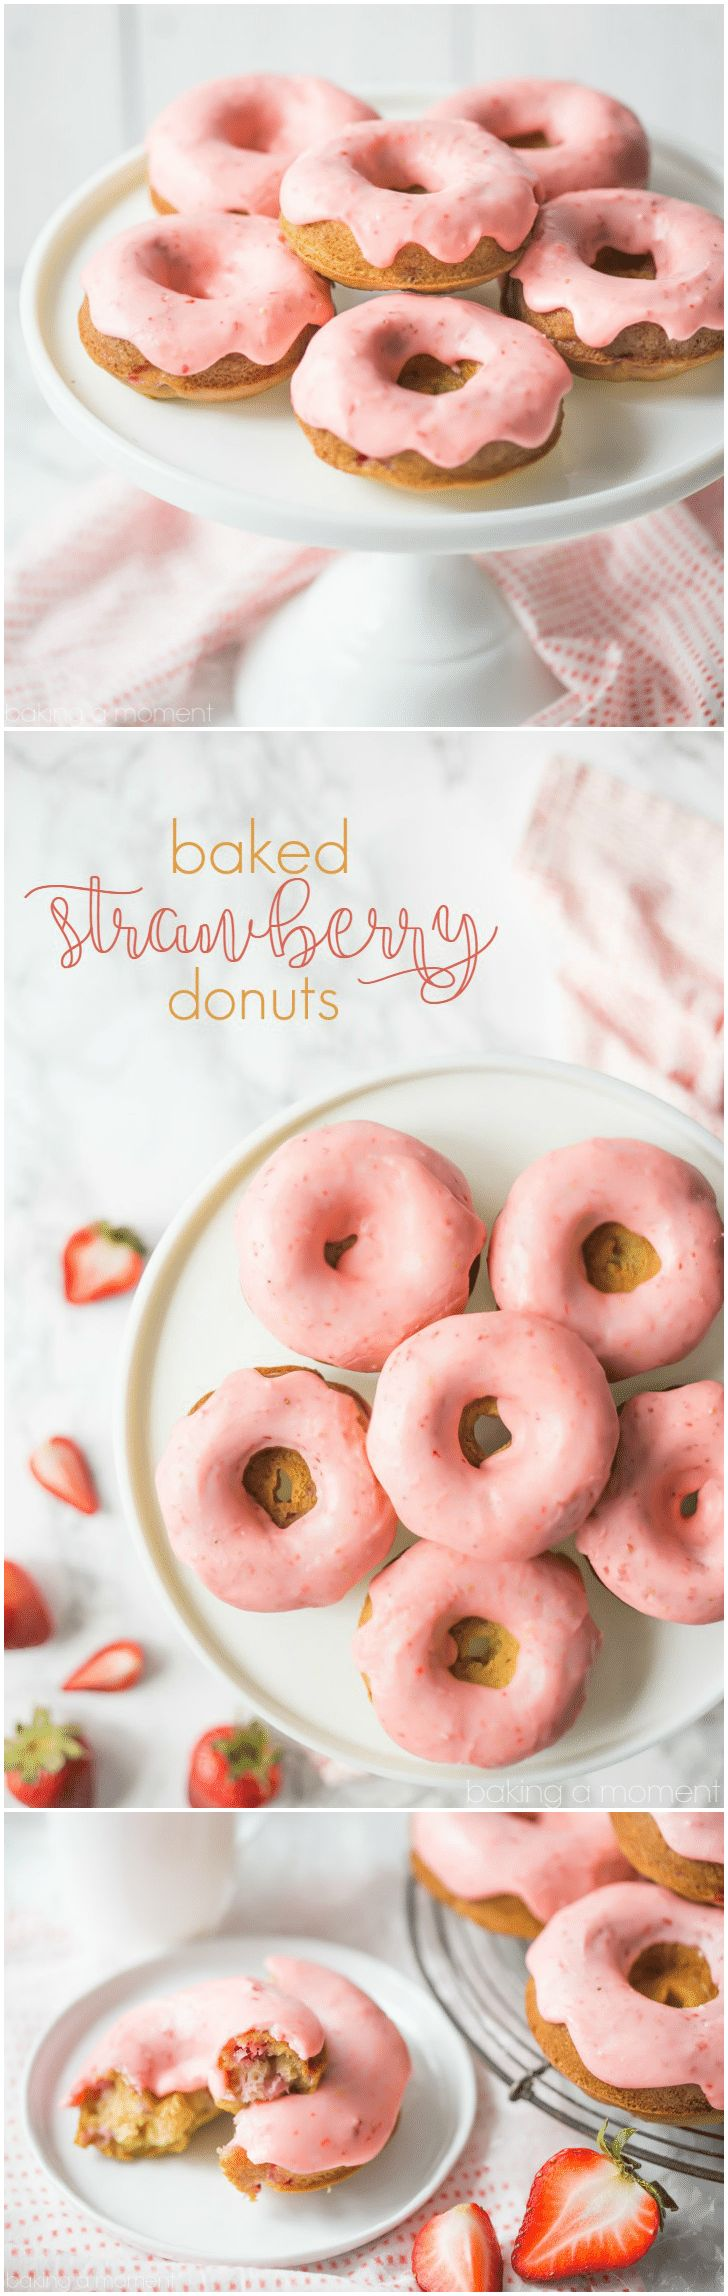 Baked Strawberry Donuts: with fresh strawberries baked right in, and a sweet and tangy pink strawberry icing!  food breakfast donuts via @bakingamoment @kitchenaidusa #sponsored